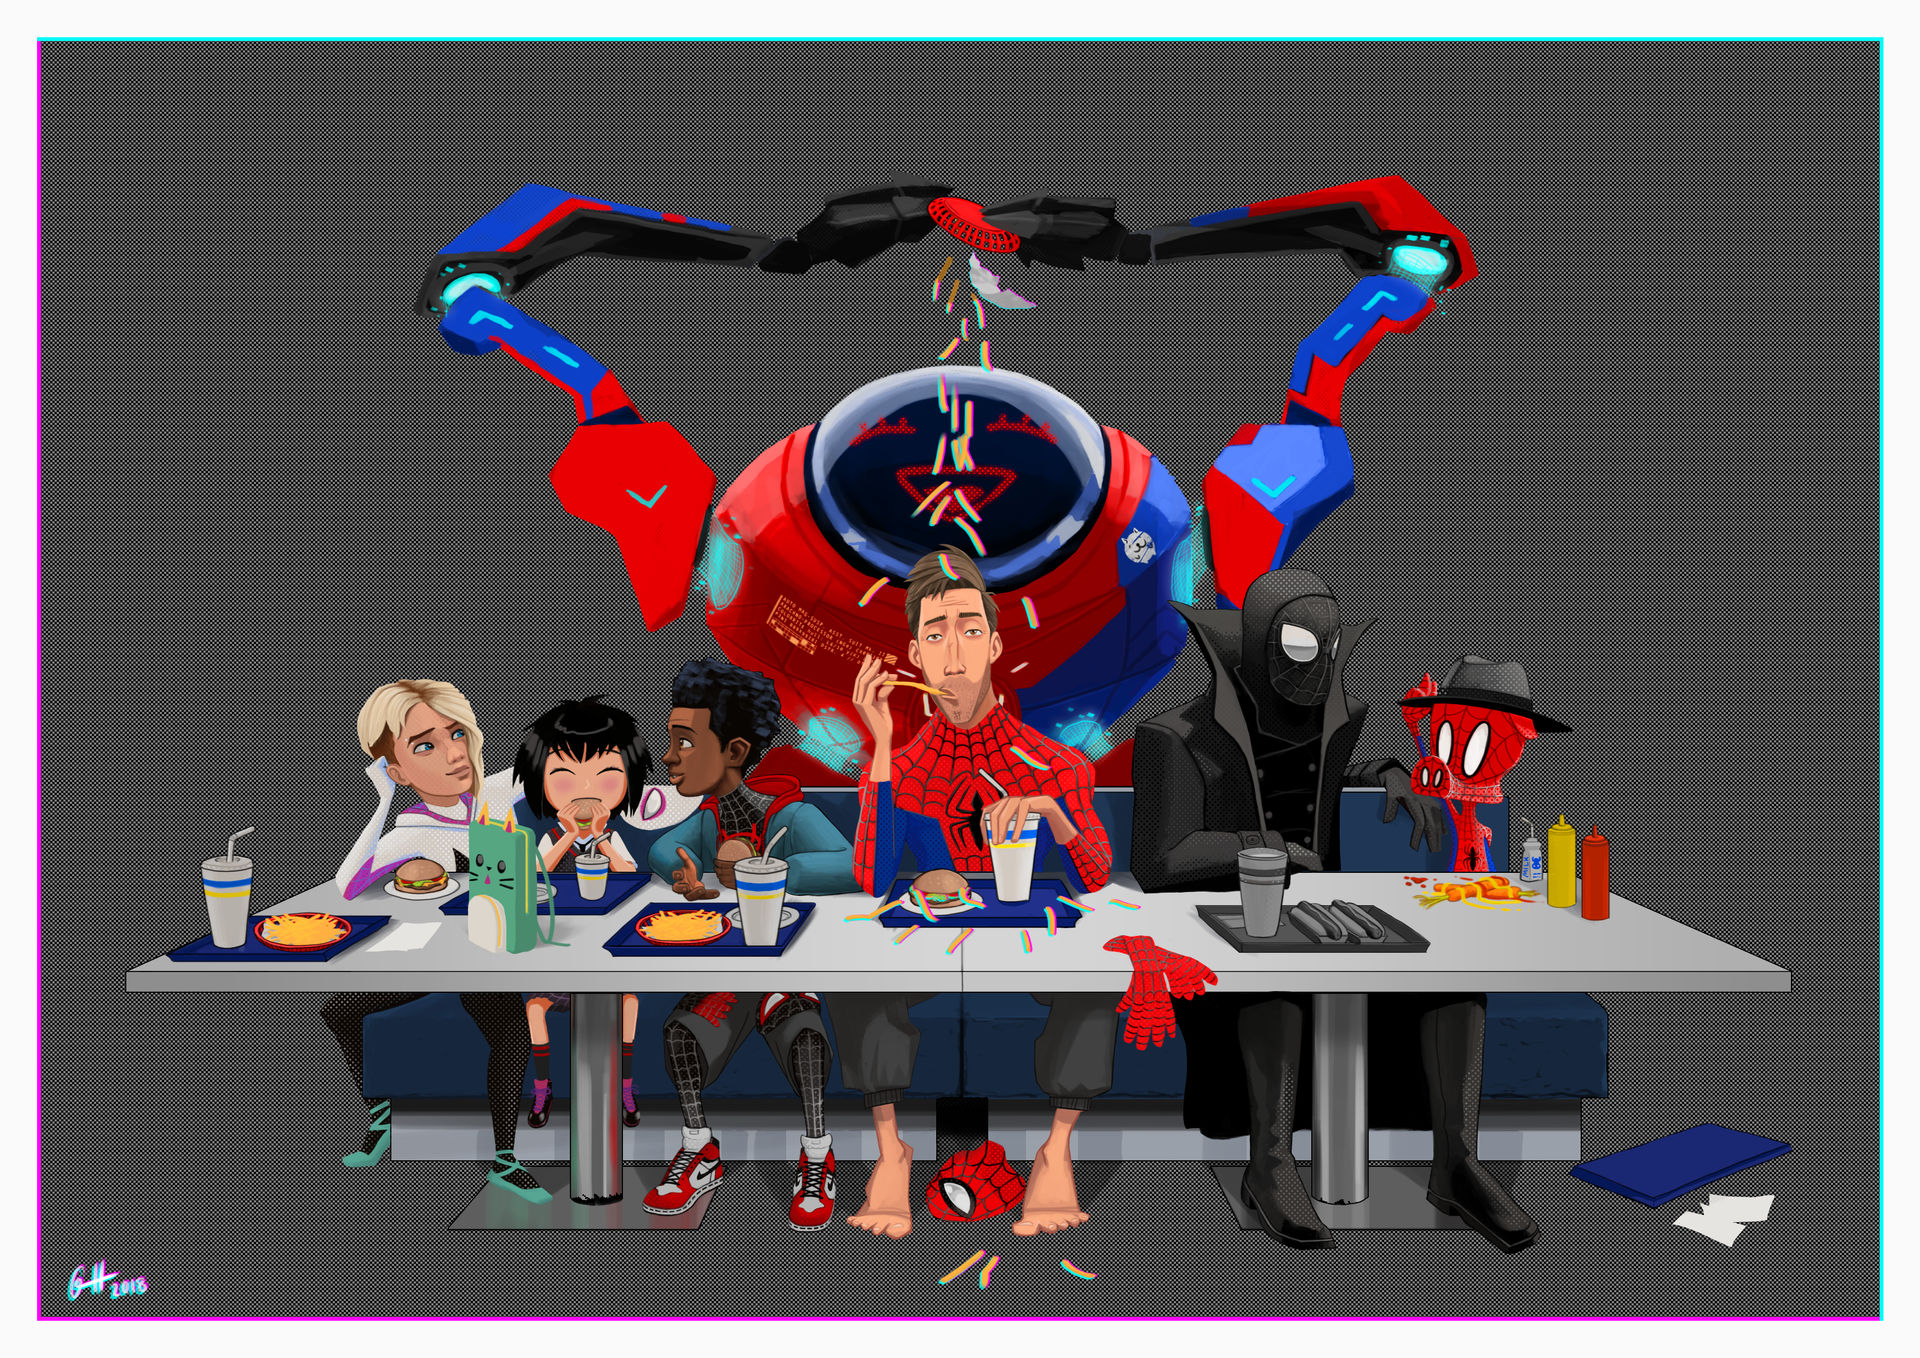 After work in the spider verse by gabrielhogberg